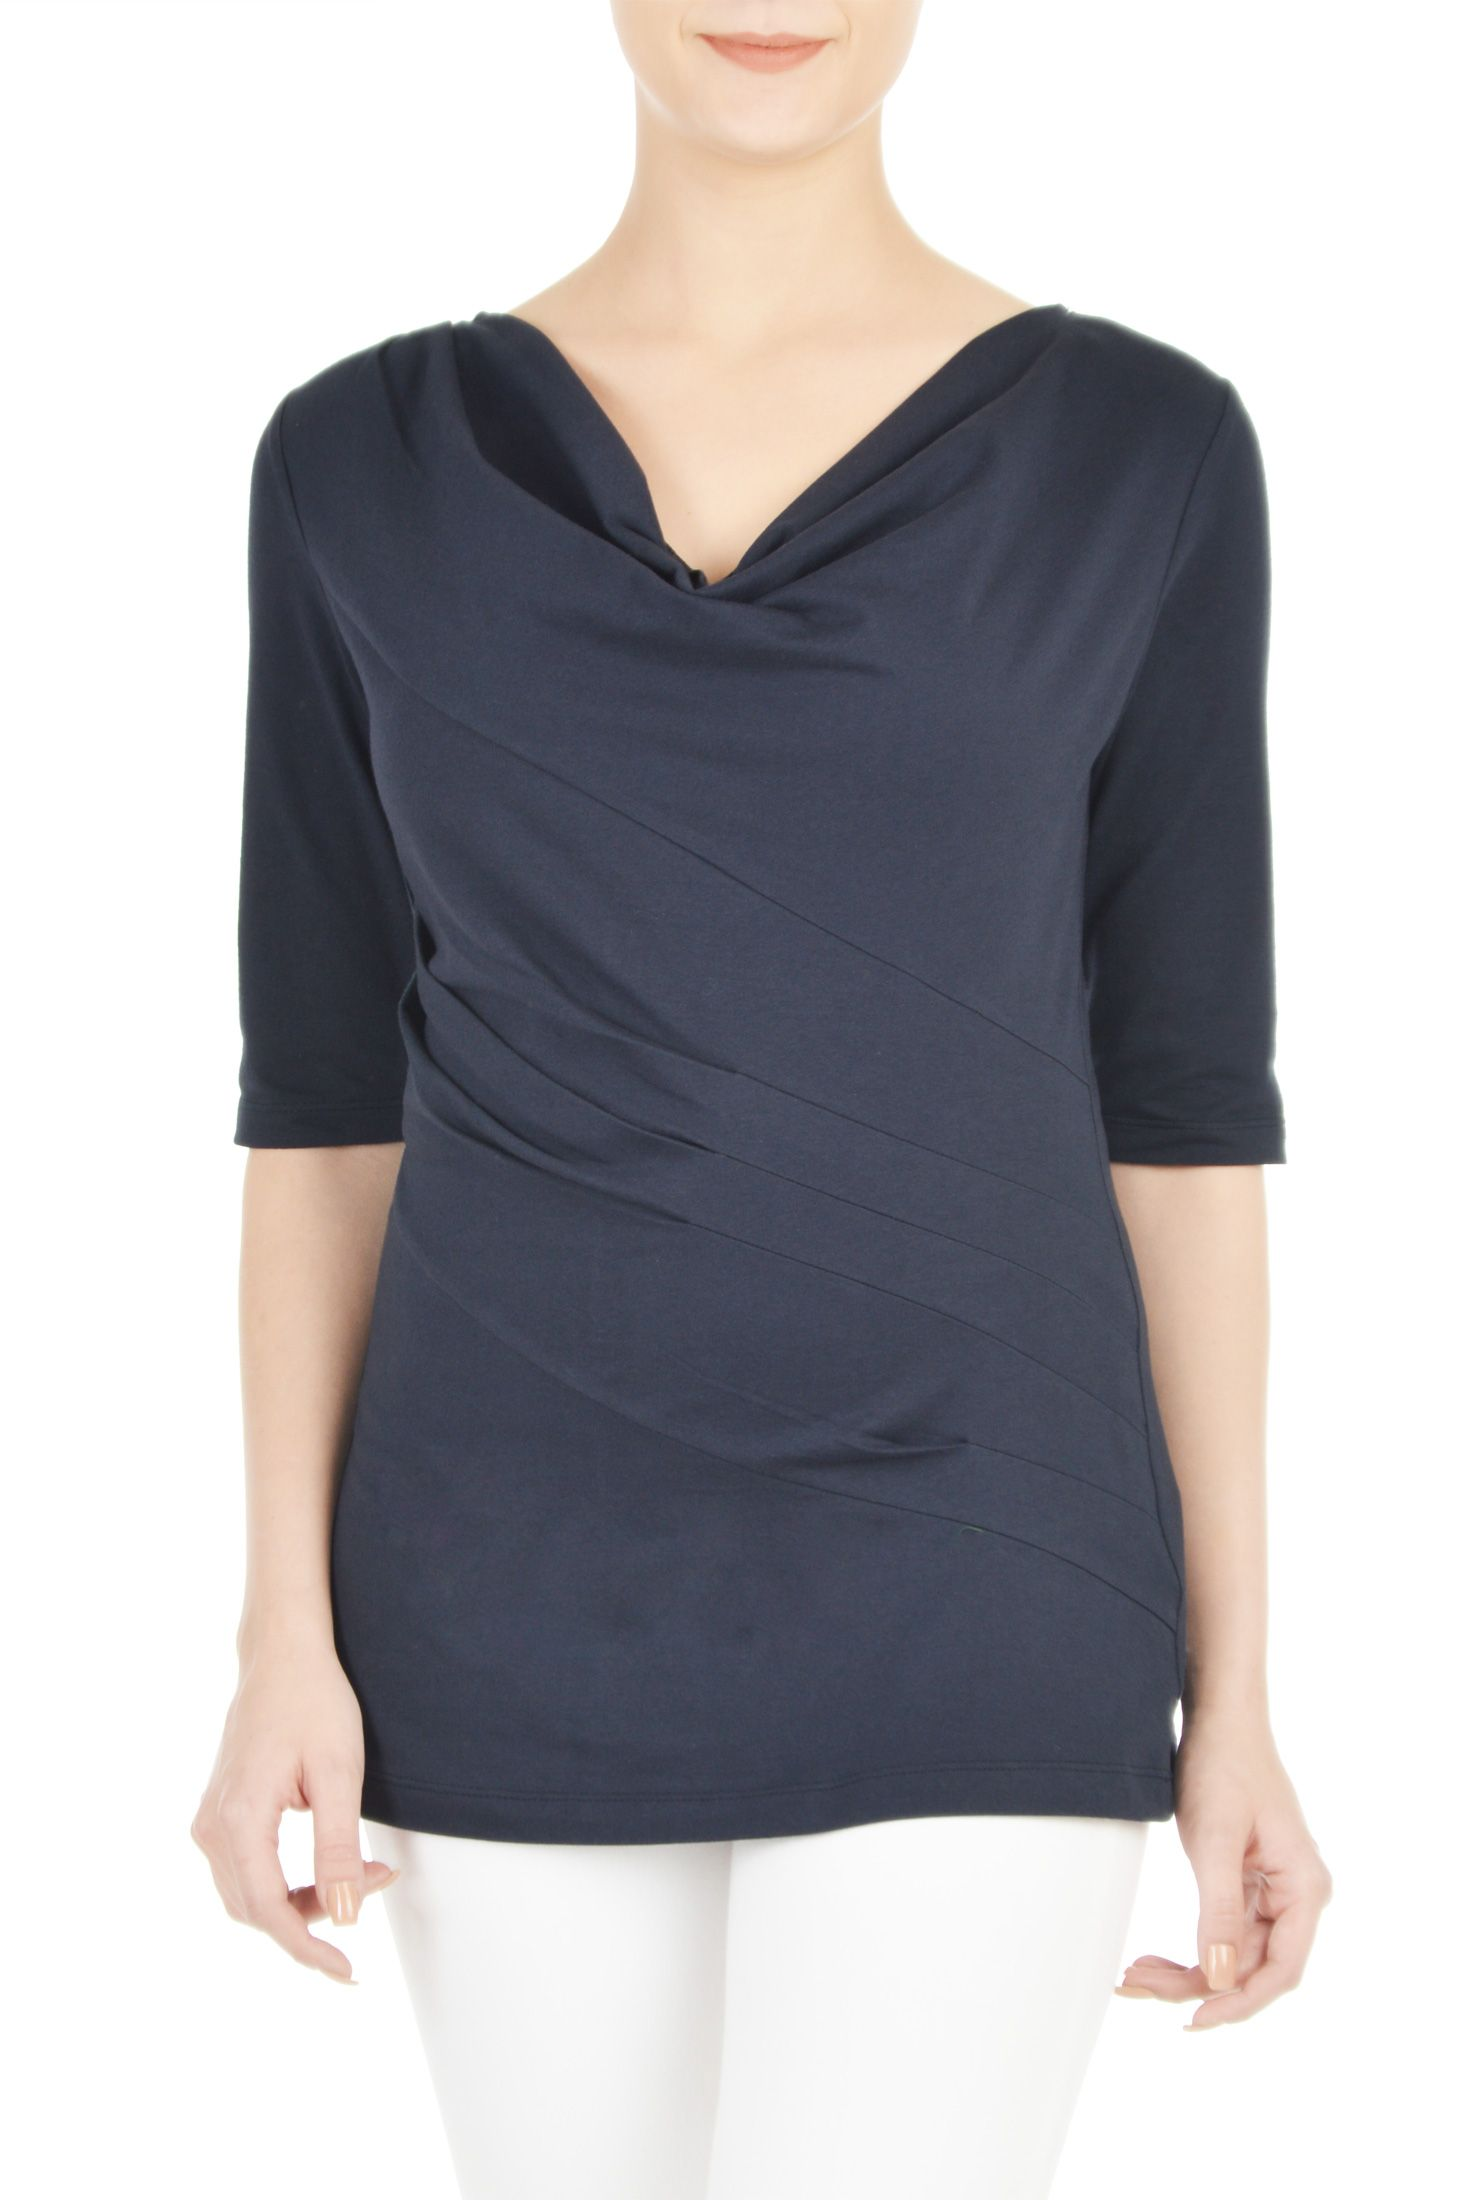 1ab35d97a95ad Our cotton jersey knit top features a cowl neck and draped pleats to the  side seam for an easy look.